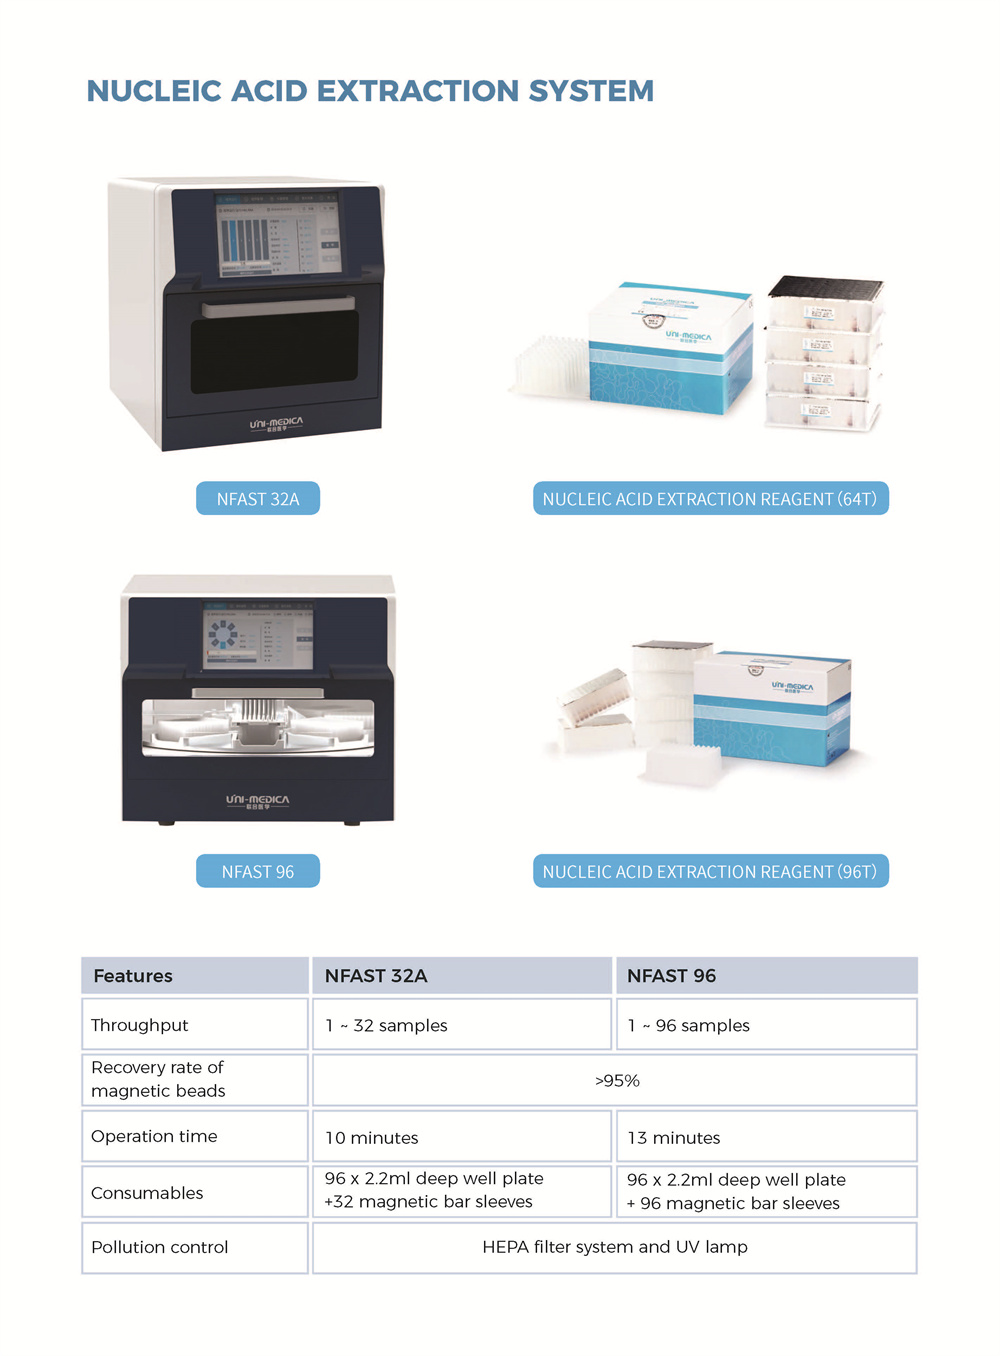 NUCLEIC ACID EXTRACTION SYSTEM R1_2